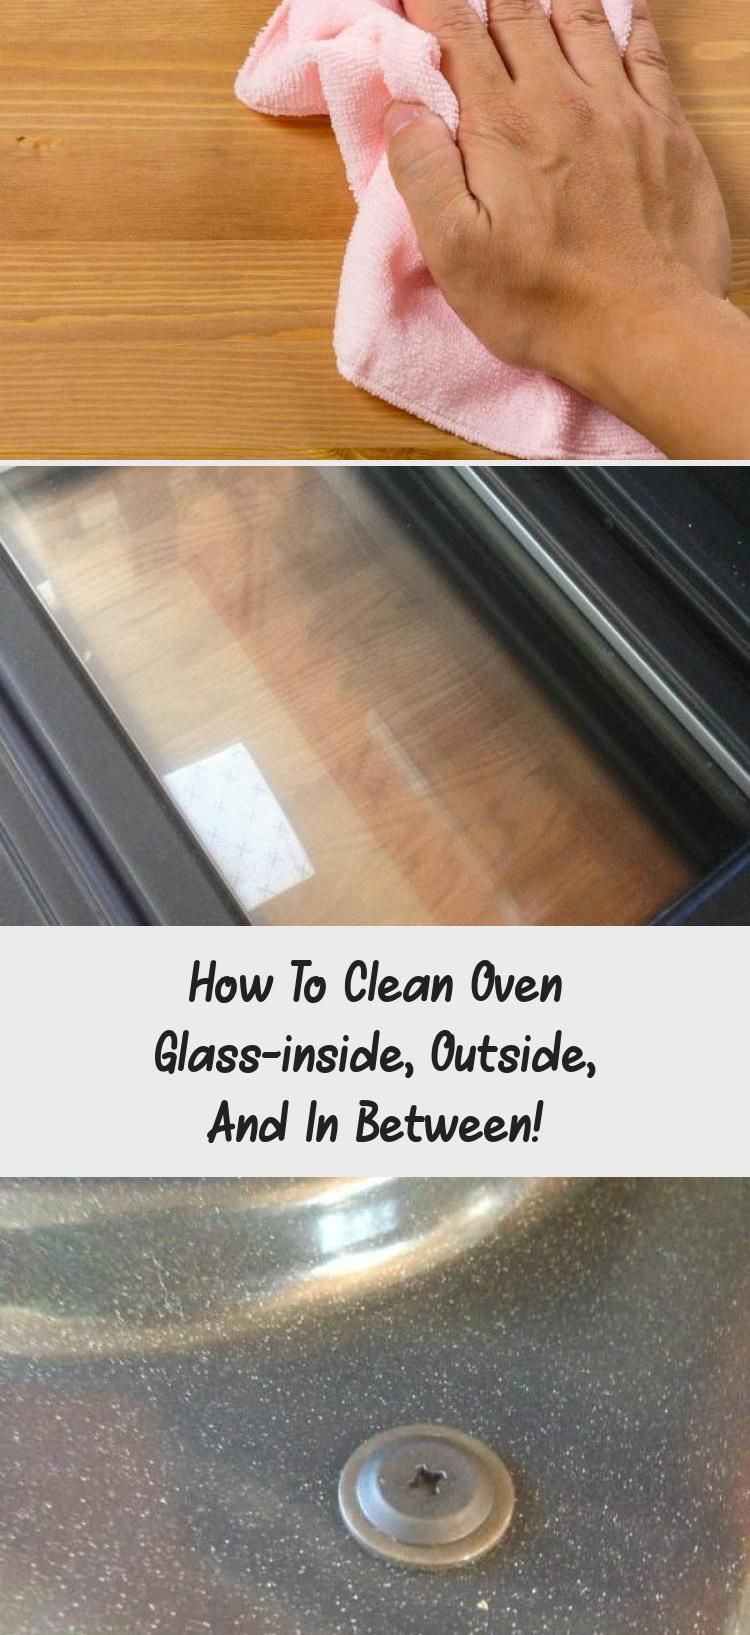 How to clean oven glassinside outside and in between